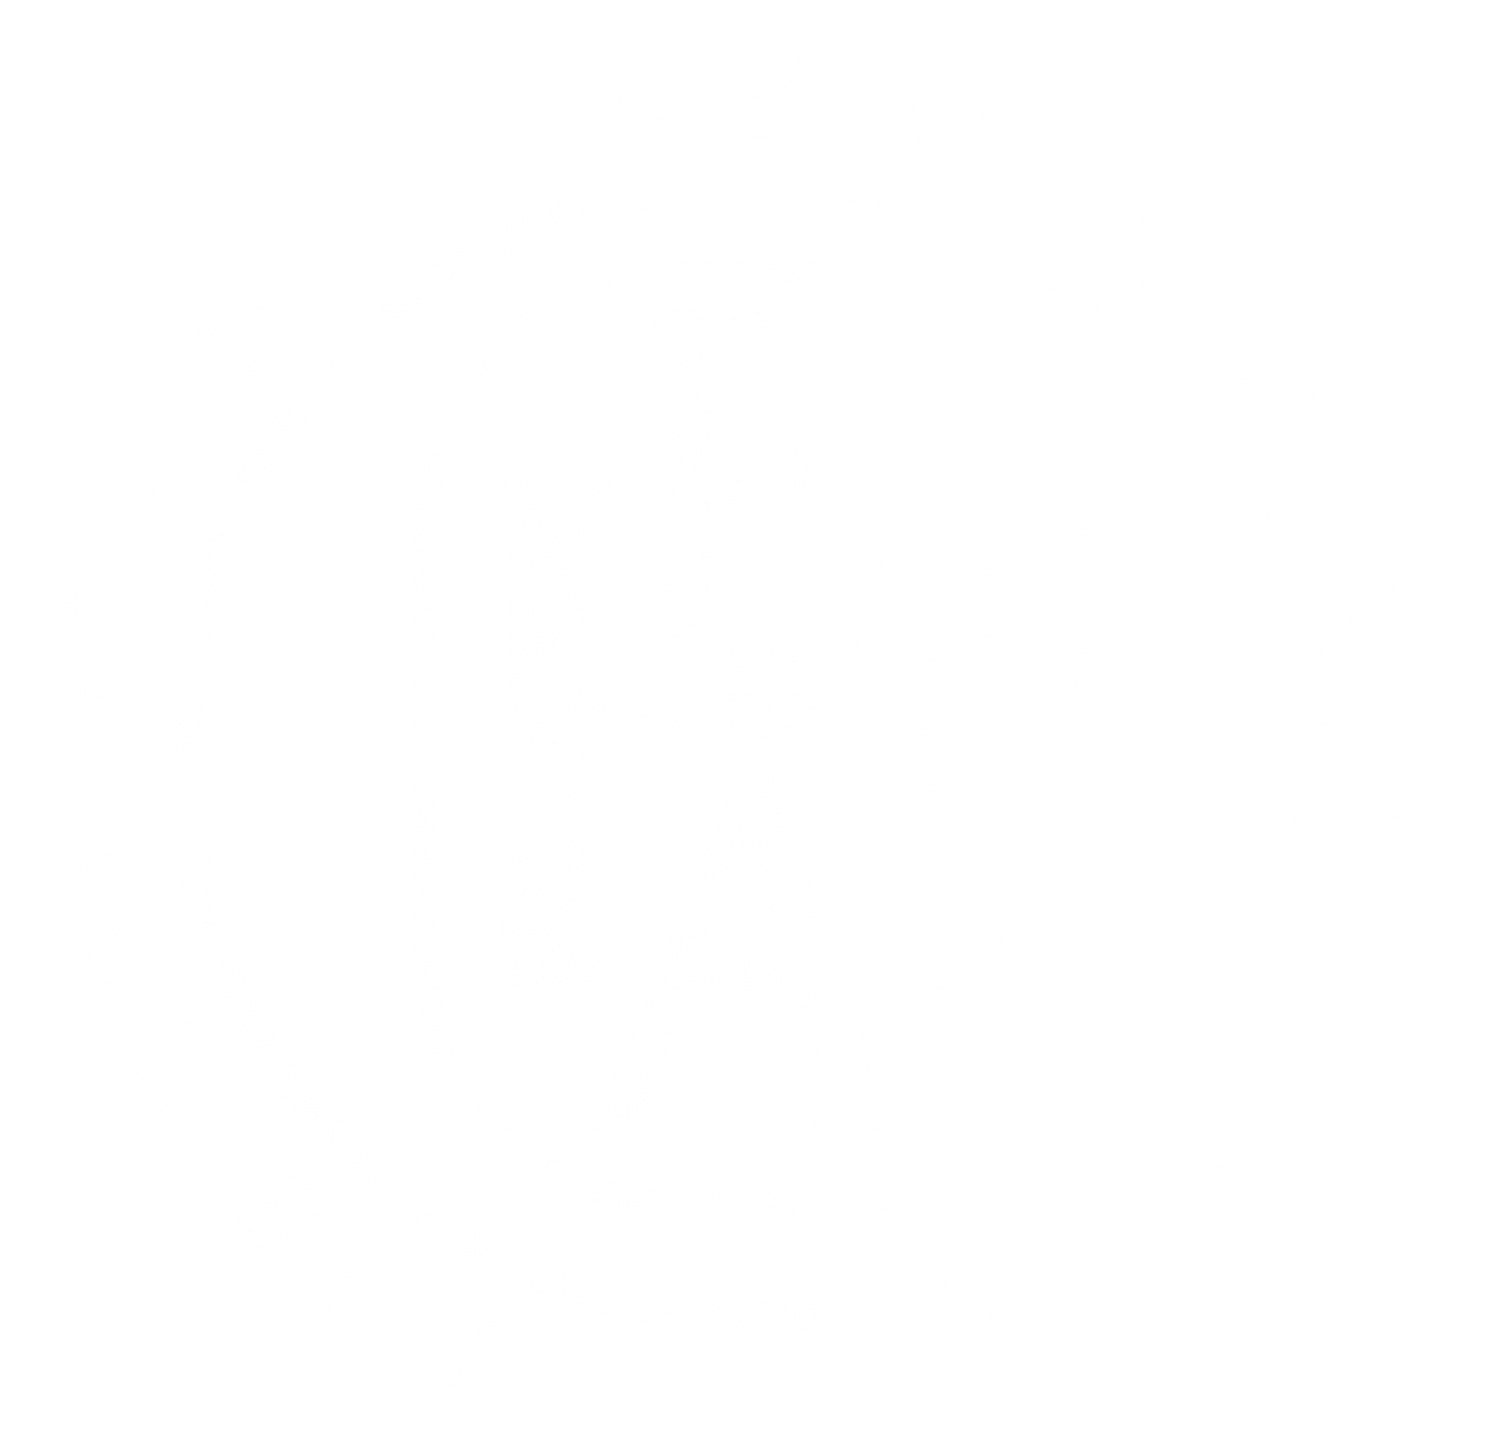 British Hyperbaric Association